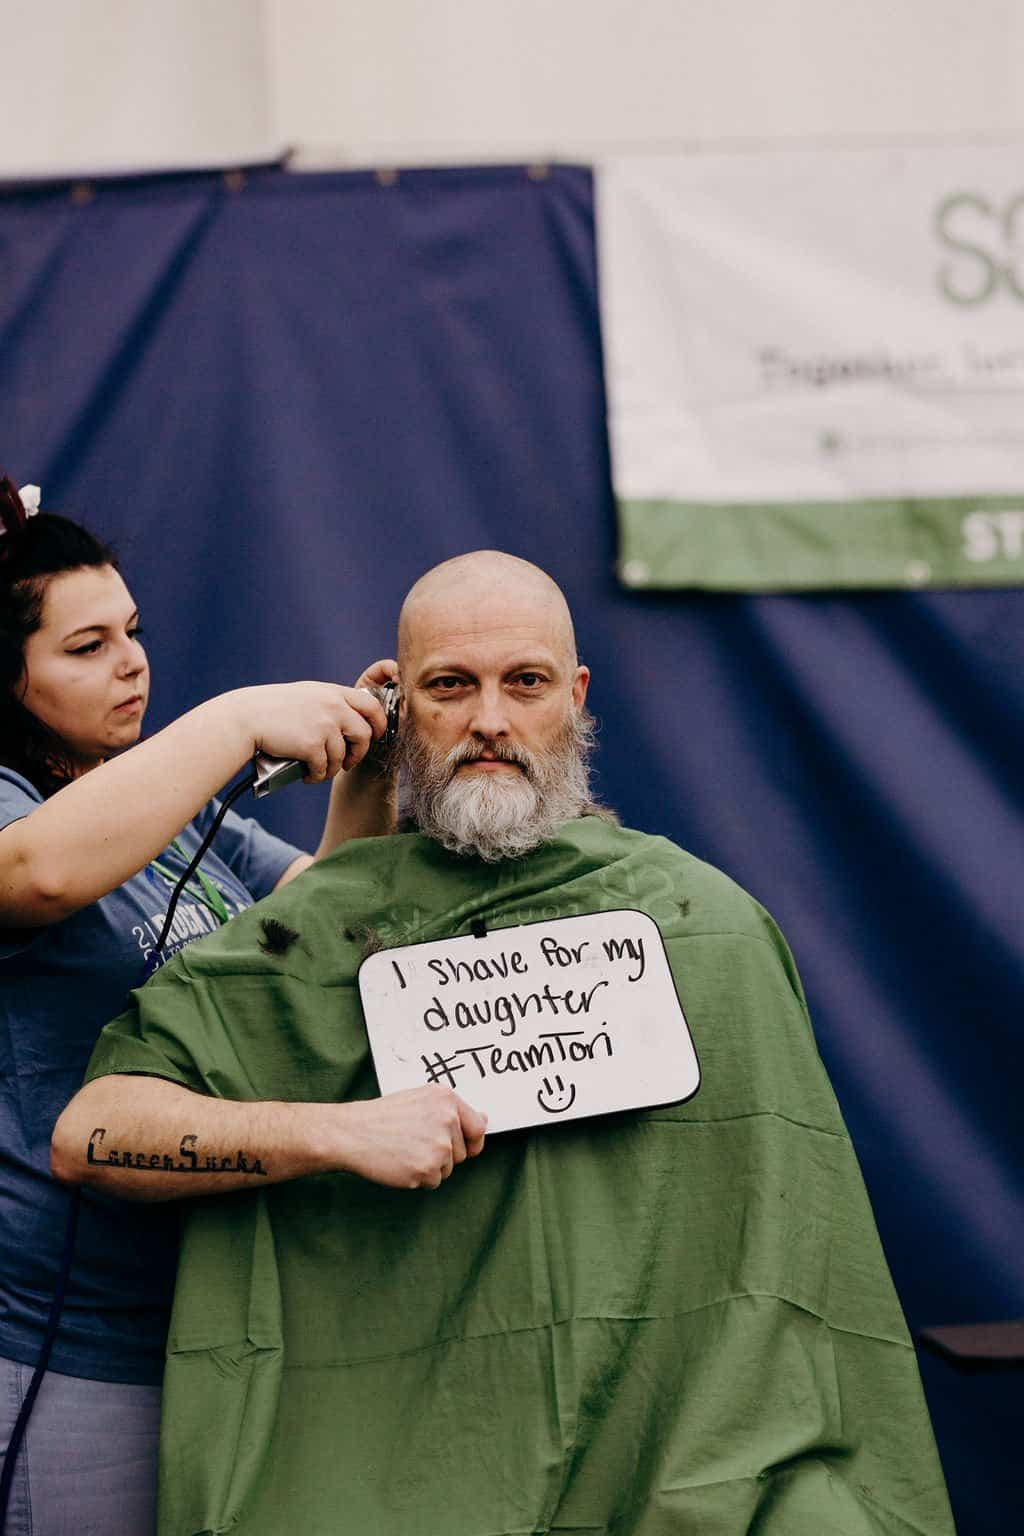 St. Baldricks | I bet you wouldn't shave your head 117